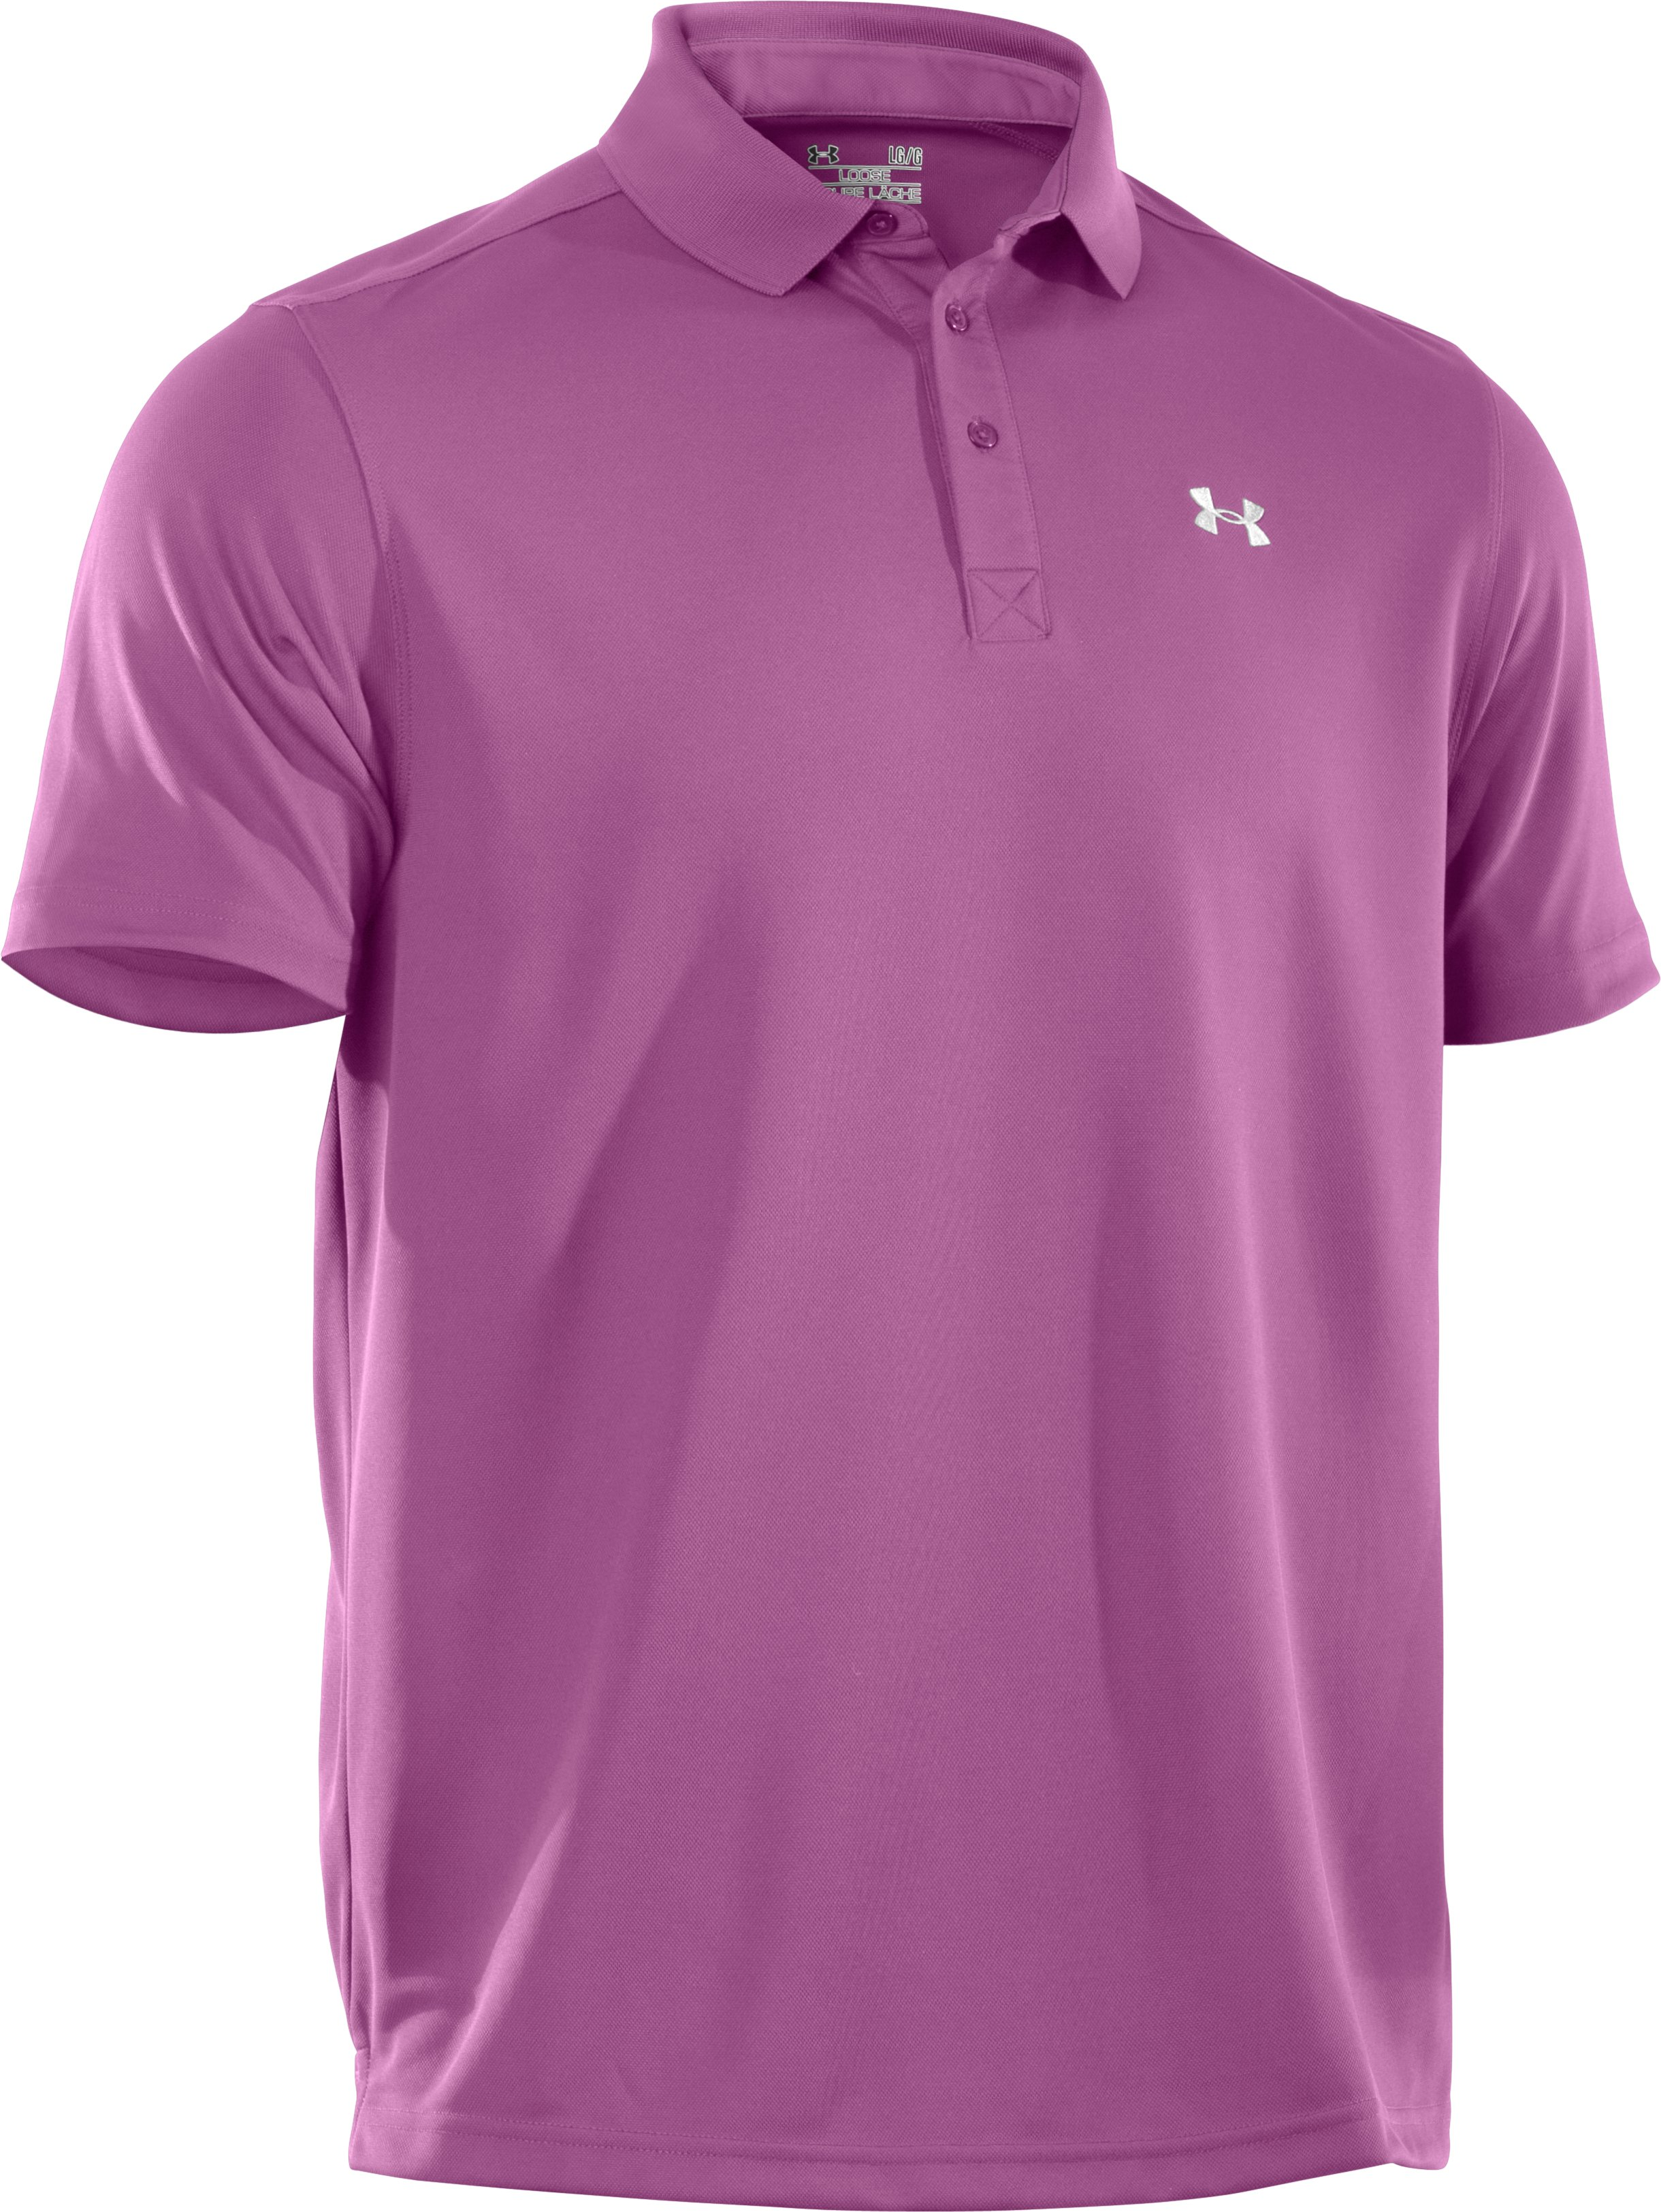 Men's UA Fade Solid Pique Polo 3.0, Jellyfish